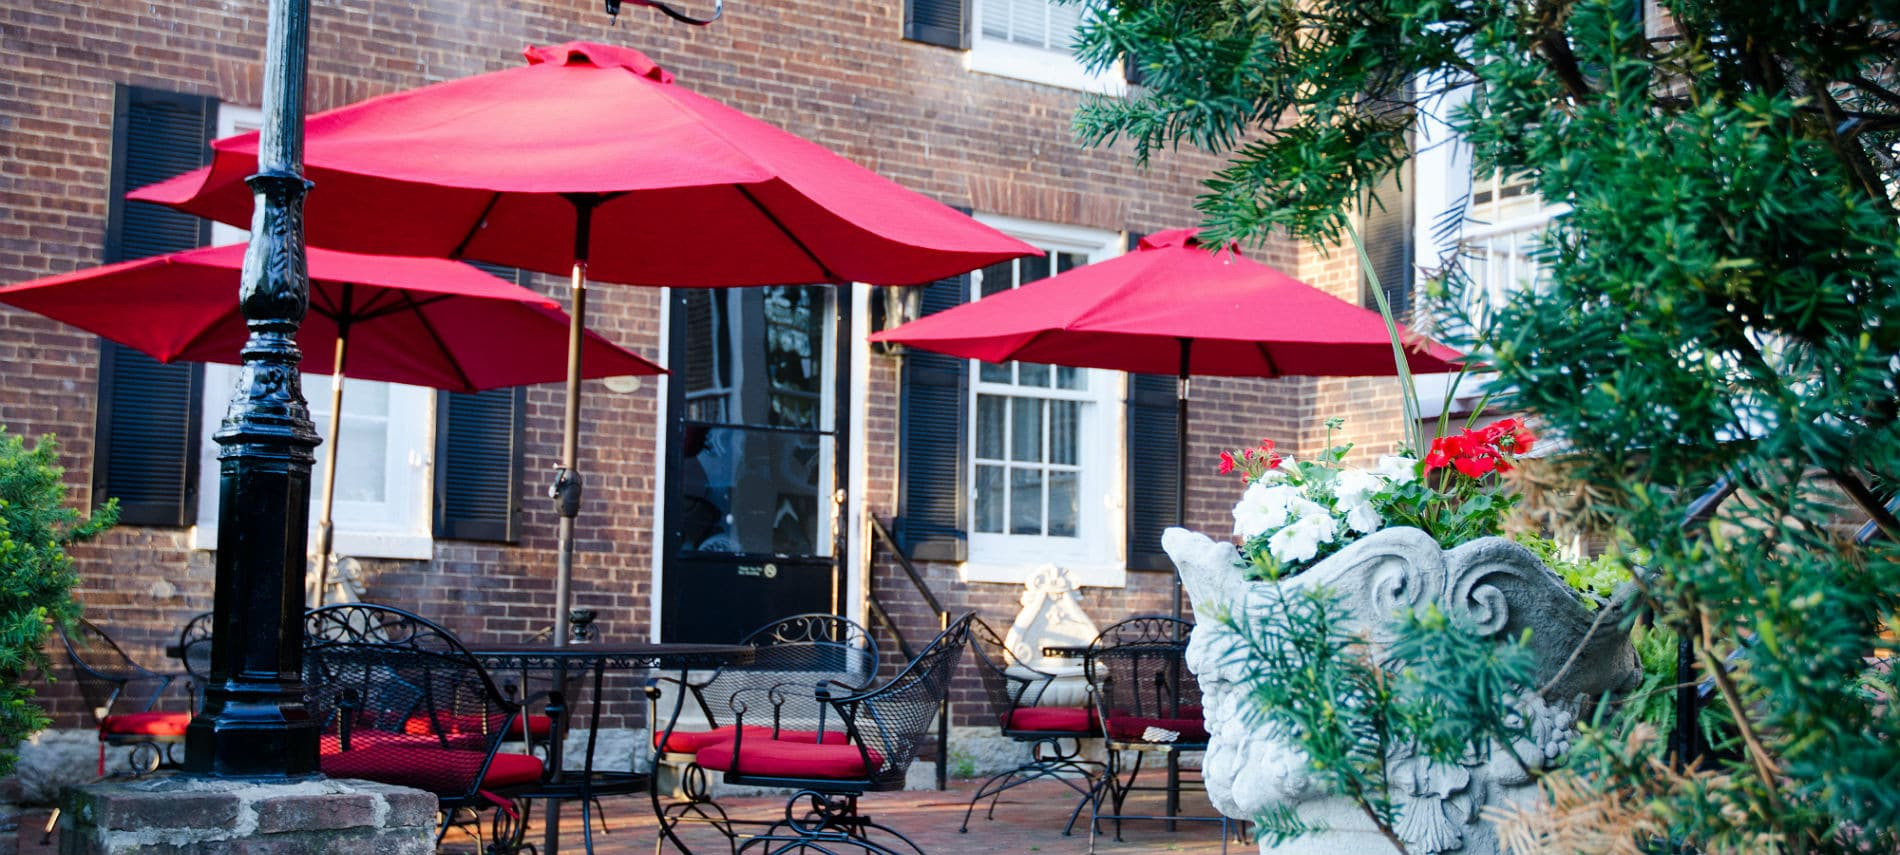 An inviting brick patio featuring black metal patio tables and chairs with scarlet umbrellas and cusions and cheerful planters